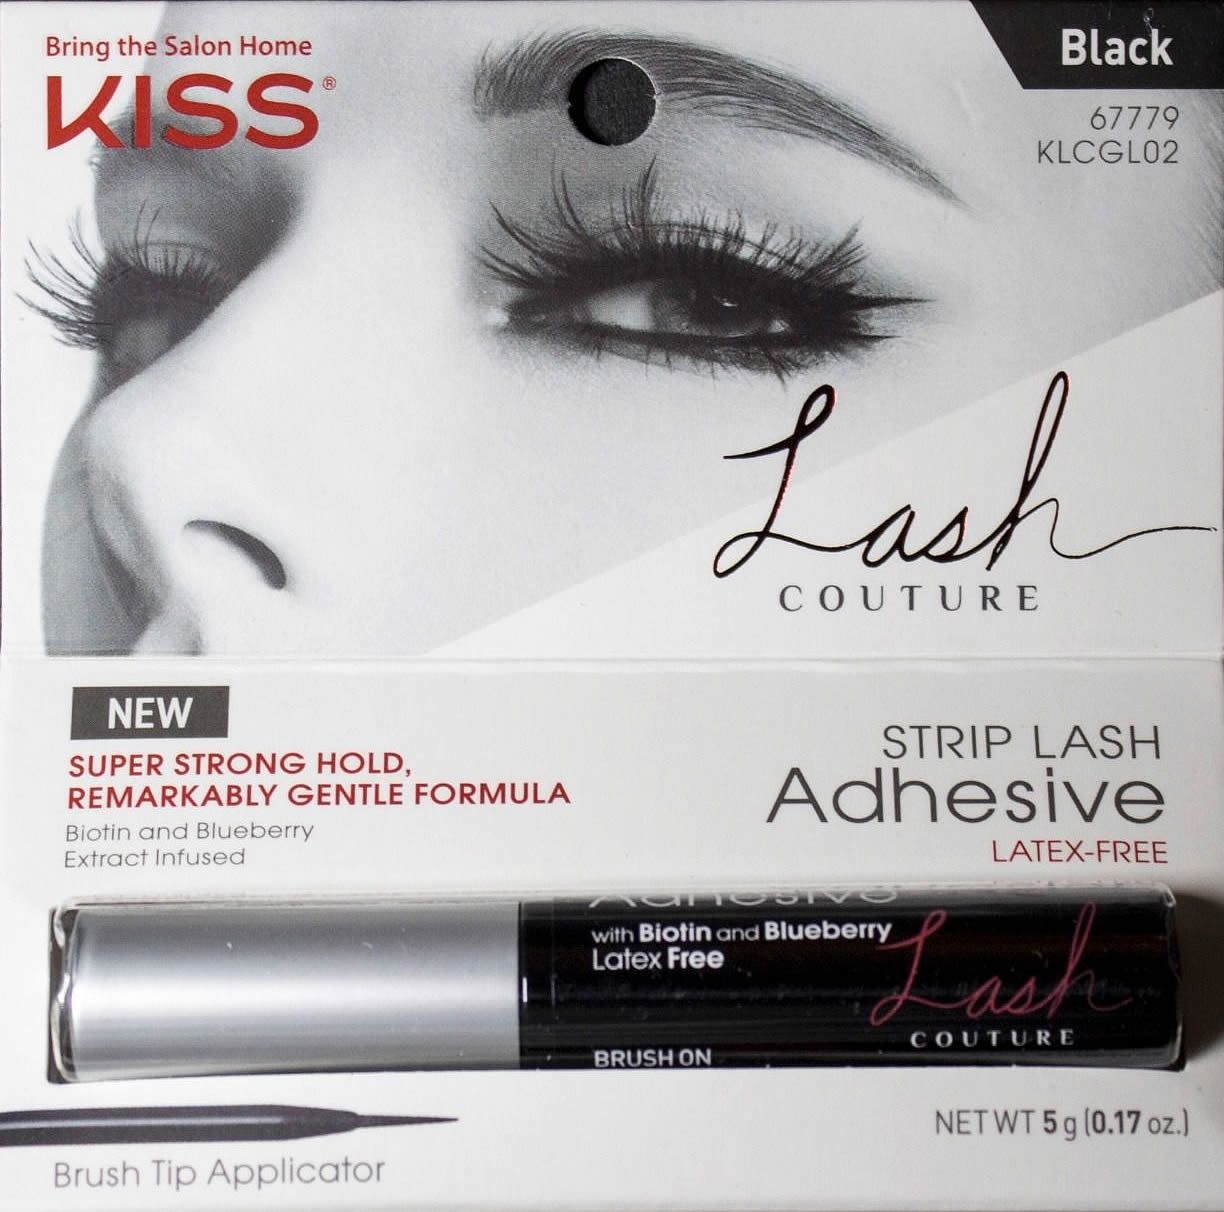 80c9a5c9b85 LASH COUTURE STRIP LASH ADHESIVE - BLACK by Kiss is a latex free adhesive  Infused with Biotin and Blueberry. #madamemadeline #lashcouture